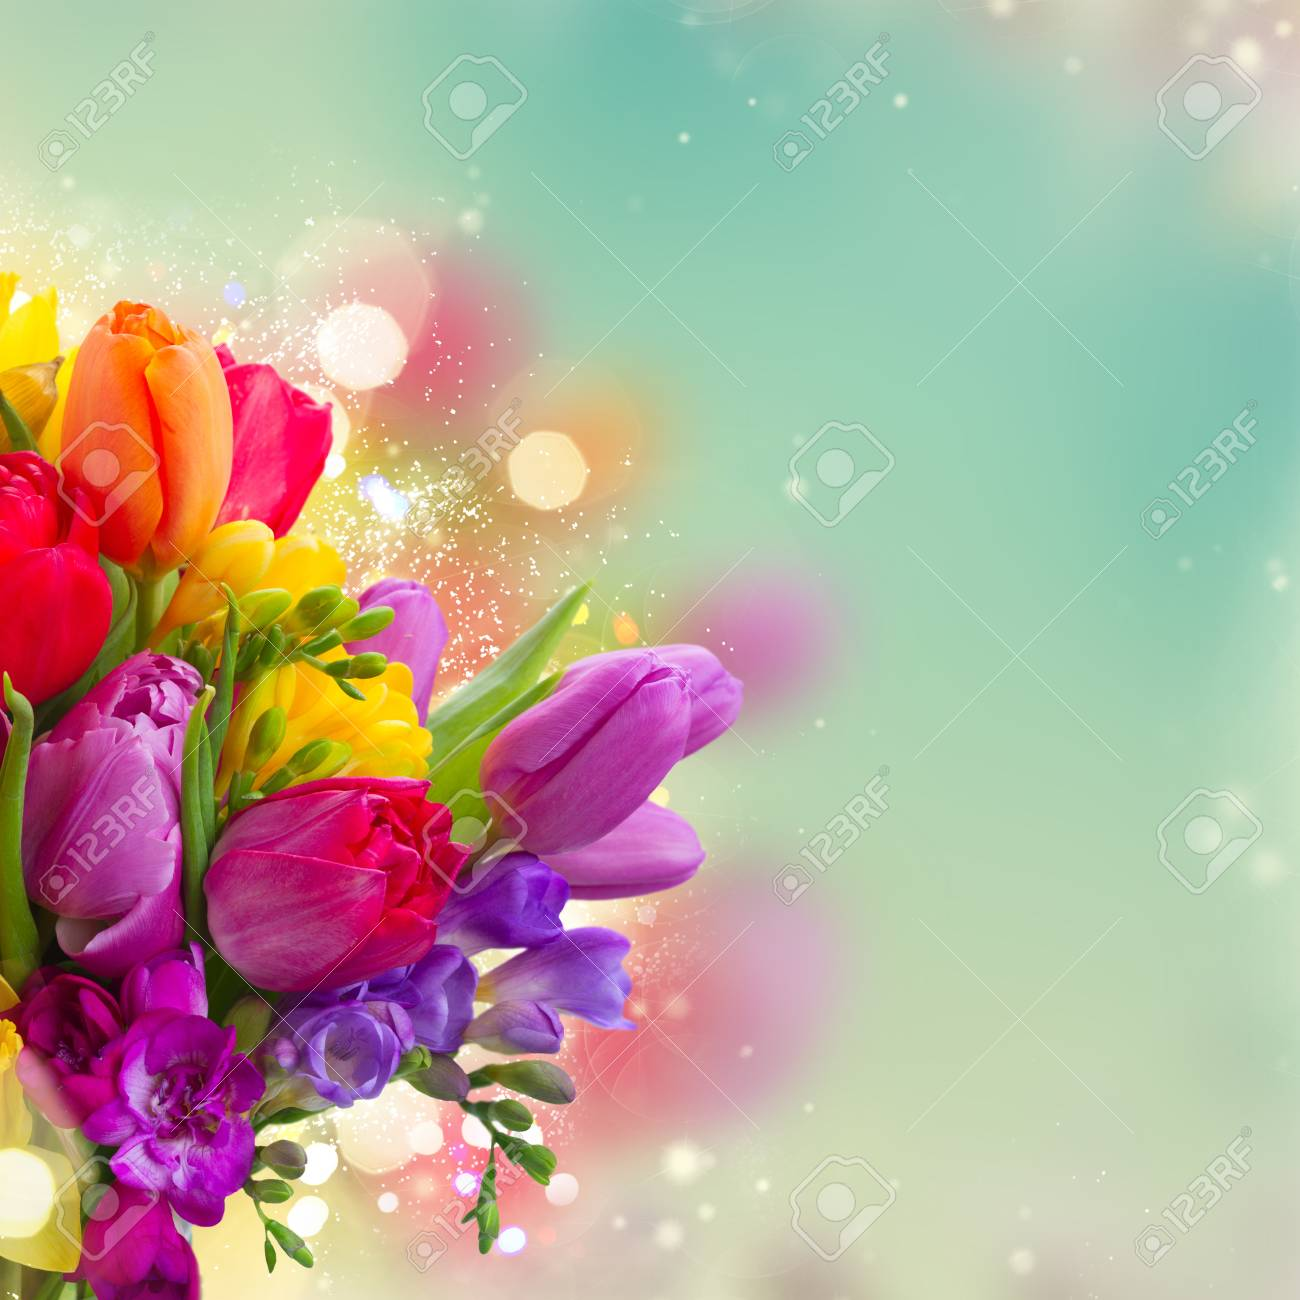 To acquire Spring Bright flowers pictures trends